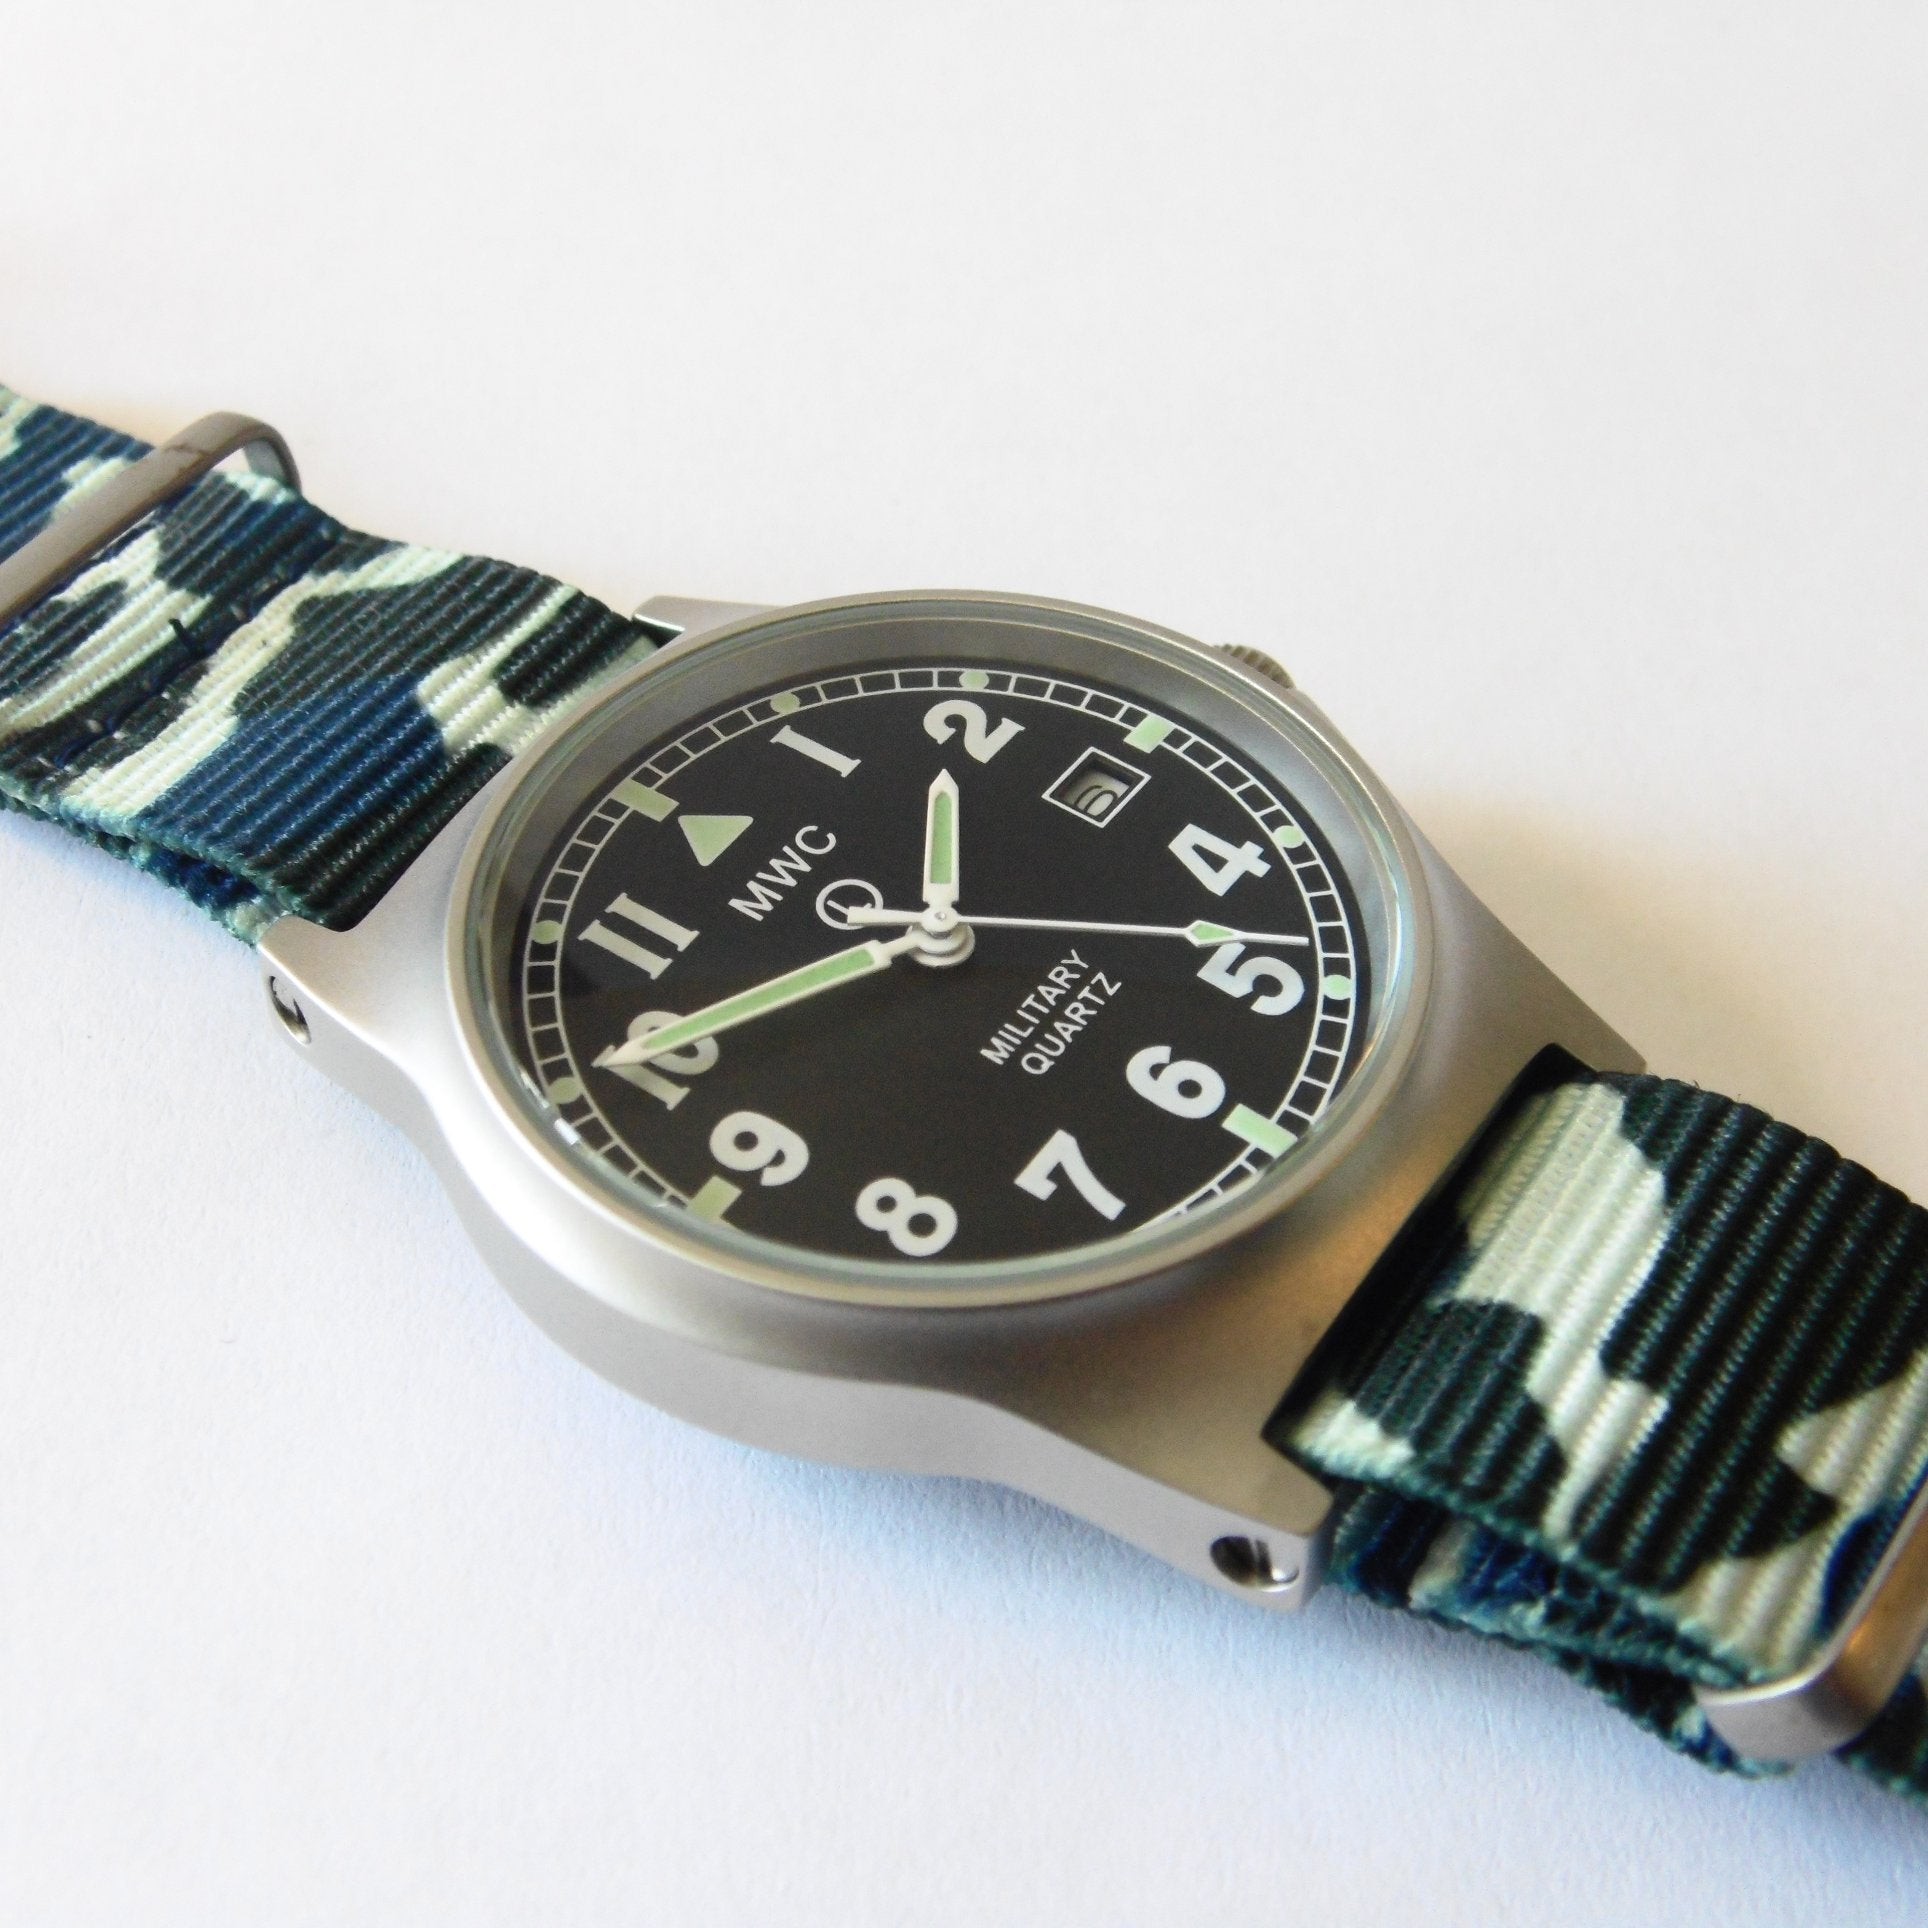 MWC G10 LM Military Watch (Camouflage Nato Strap) - Watchfinder General - UK suppliers of Russian Vostok Parnis Watches MWC G10  - 2